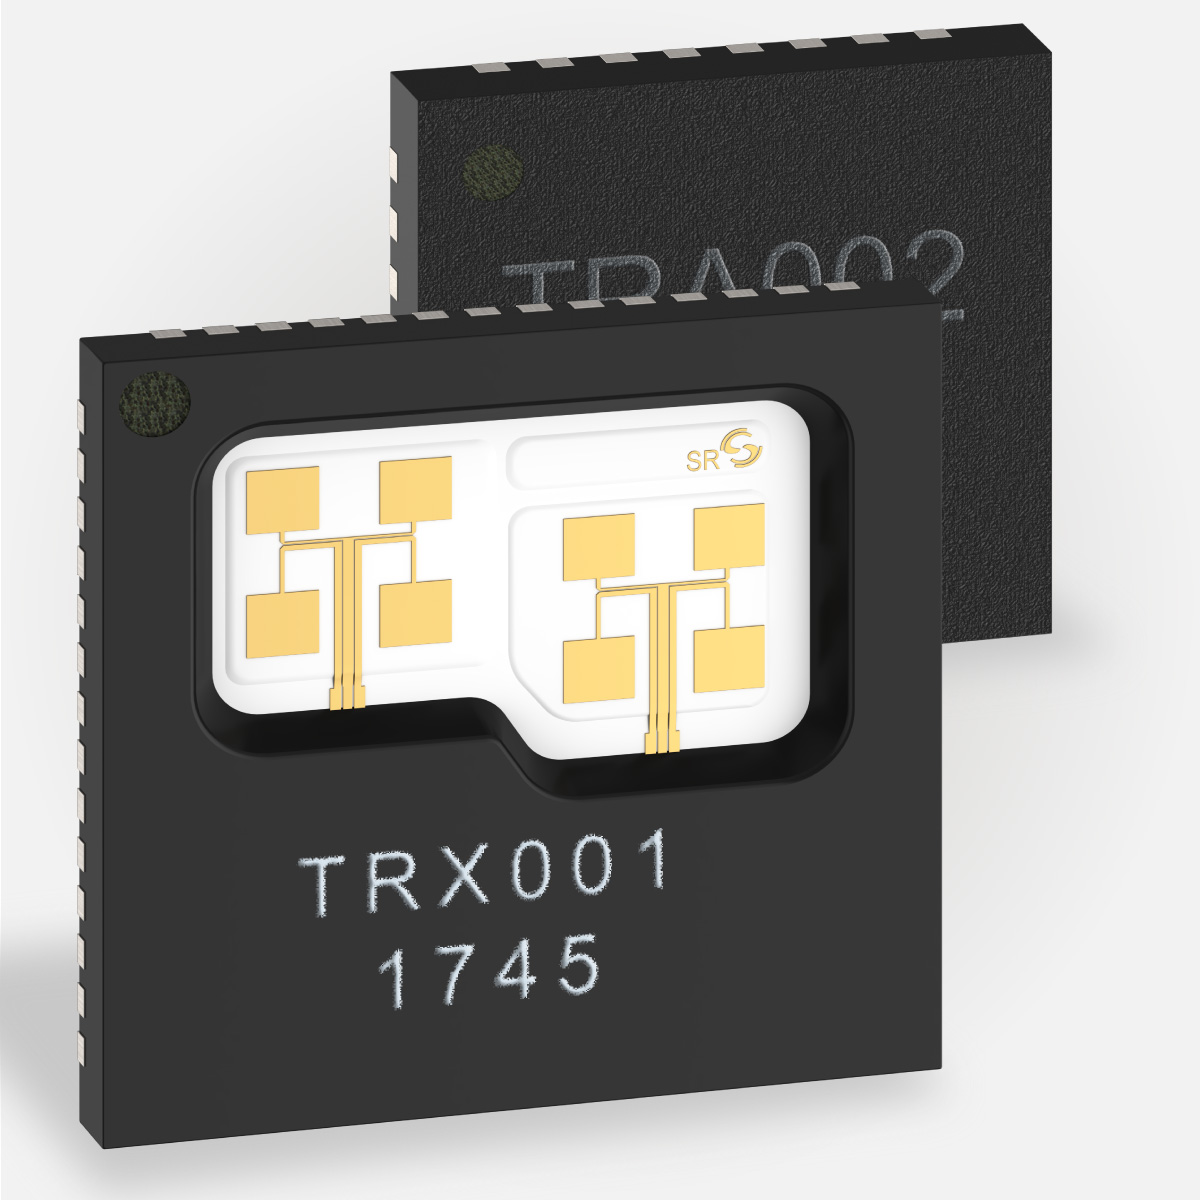 120 GHz Radar Chips